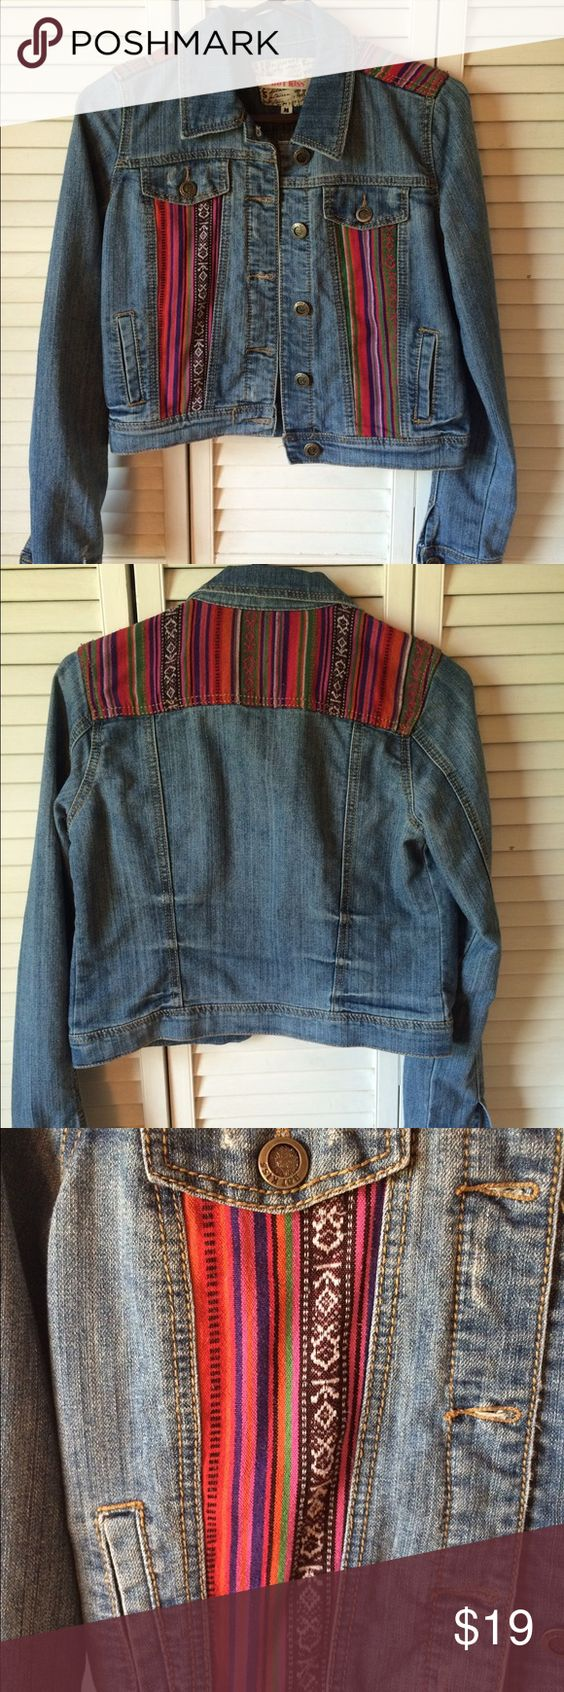 Womens Hotkiss Aztec Jean Jacket This jean jacket is perfect for pairing with a dress or your favorite white tank top and jeans. Accented with colorful aztec patterns, button sleeves and pockets for carrying all of your important items. Hot Kiss Jackets & Coats Jean Jackets